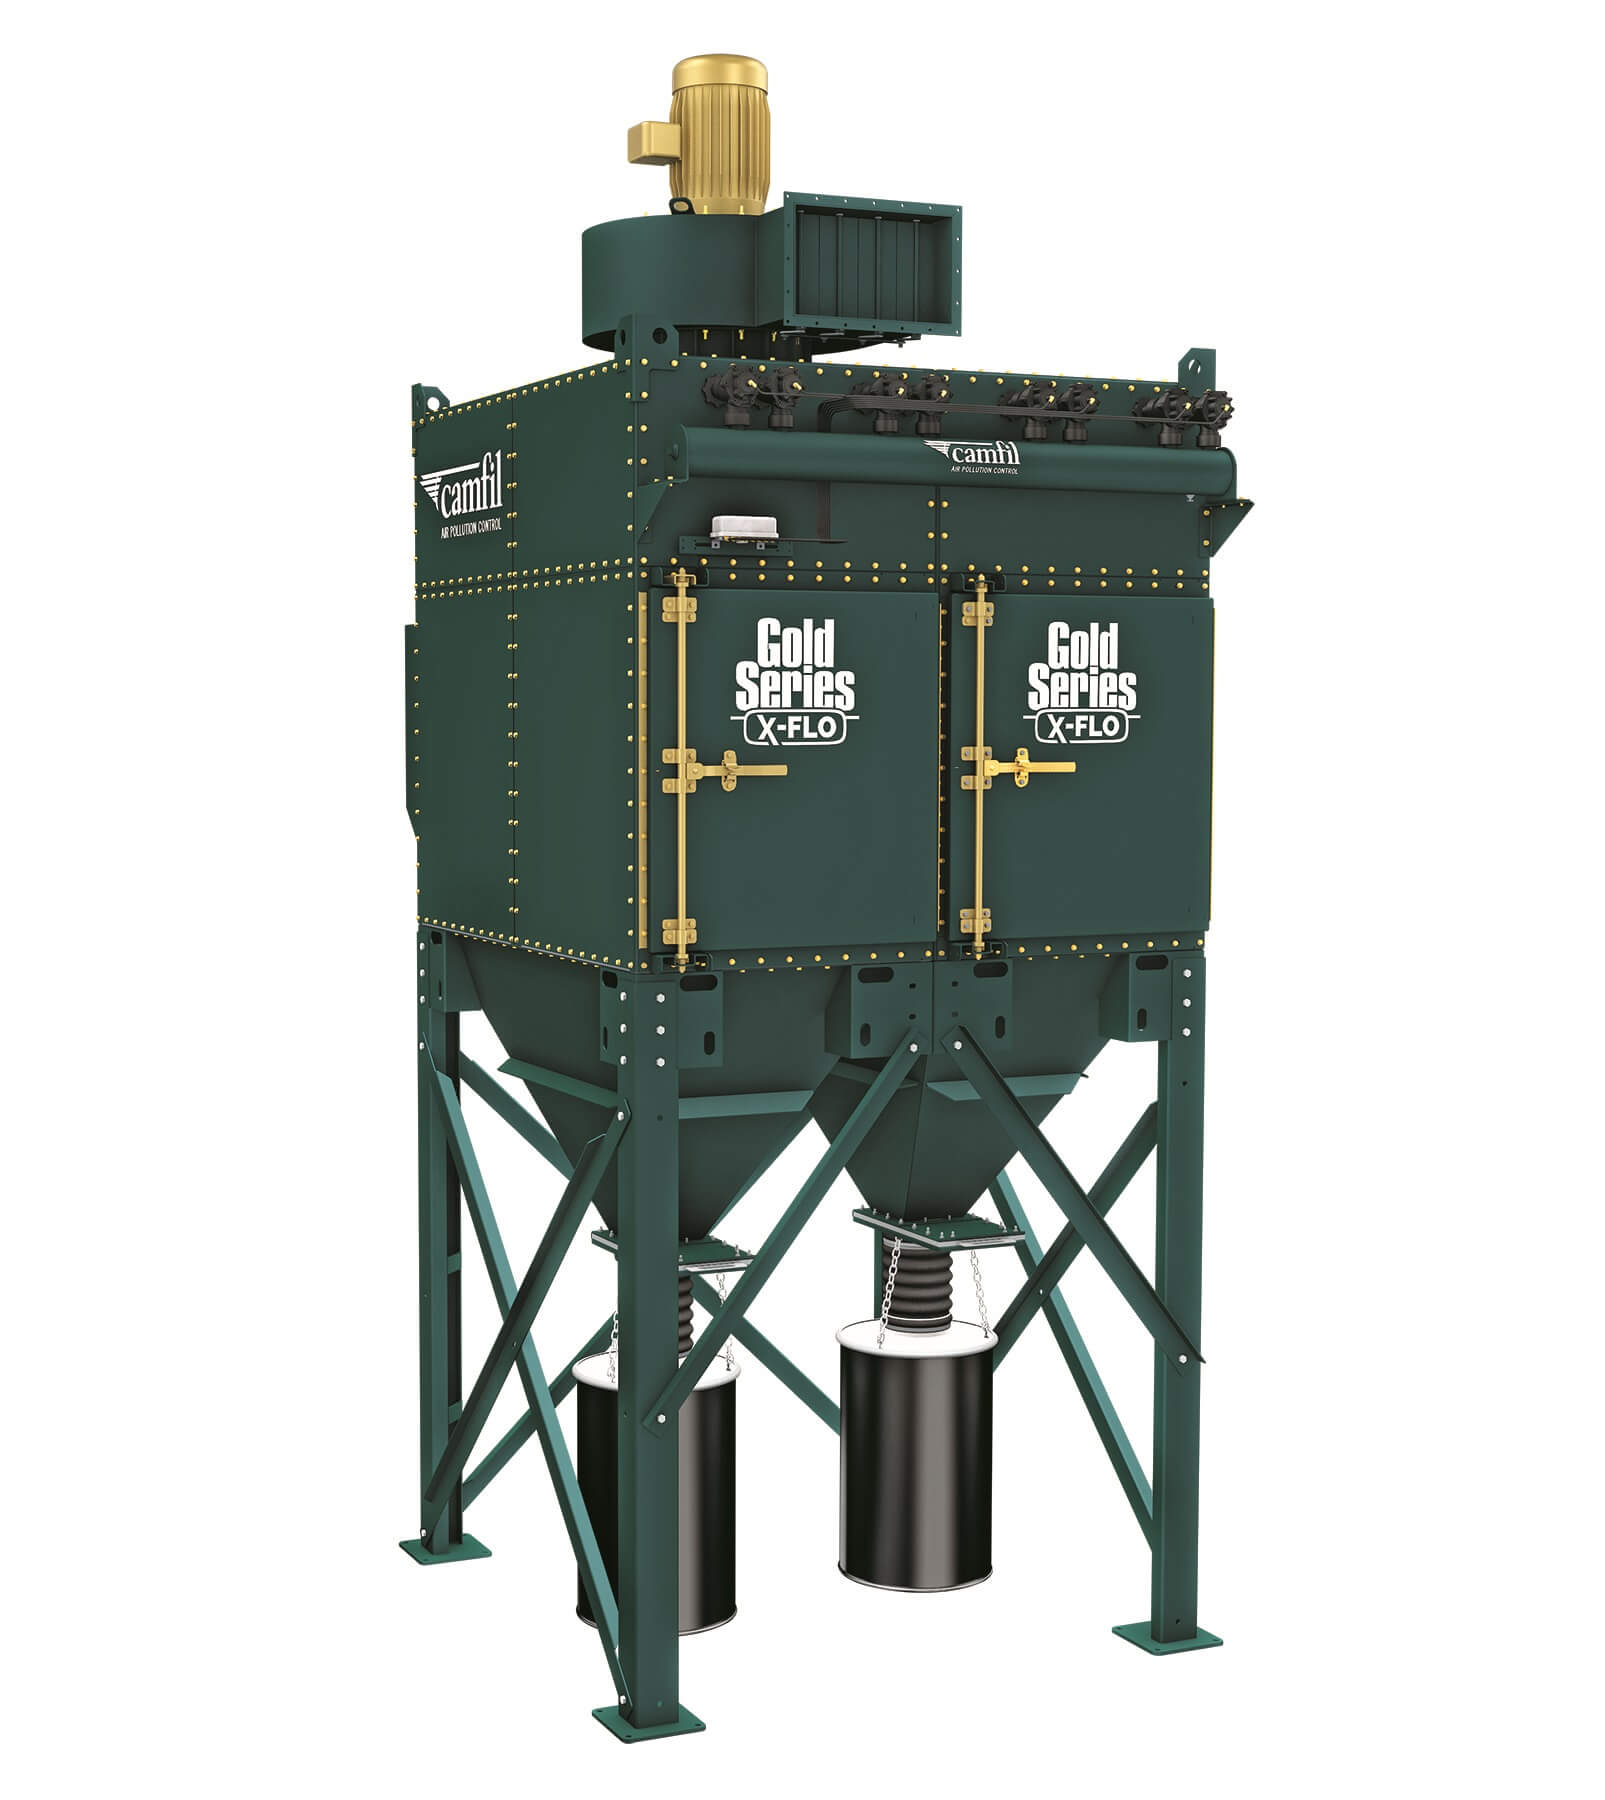 industrial dust collector camfil gold series x-flo